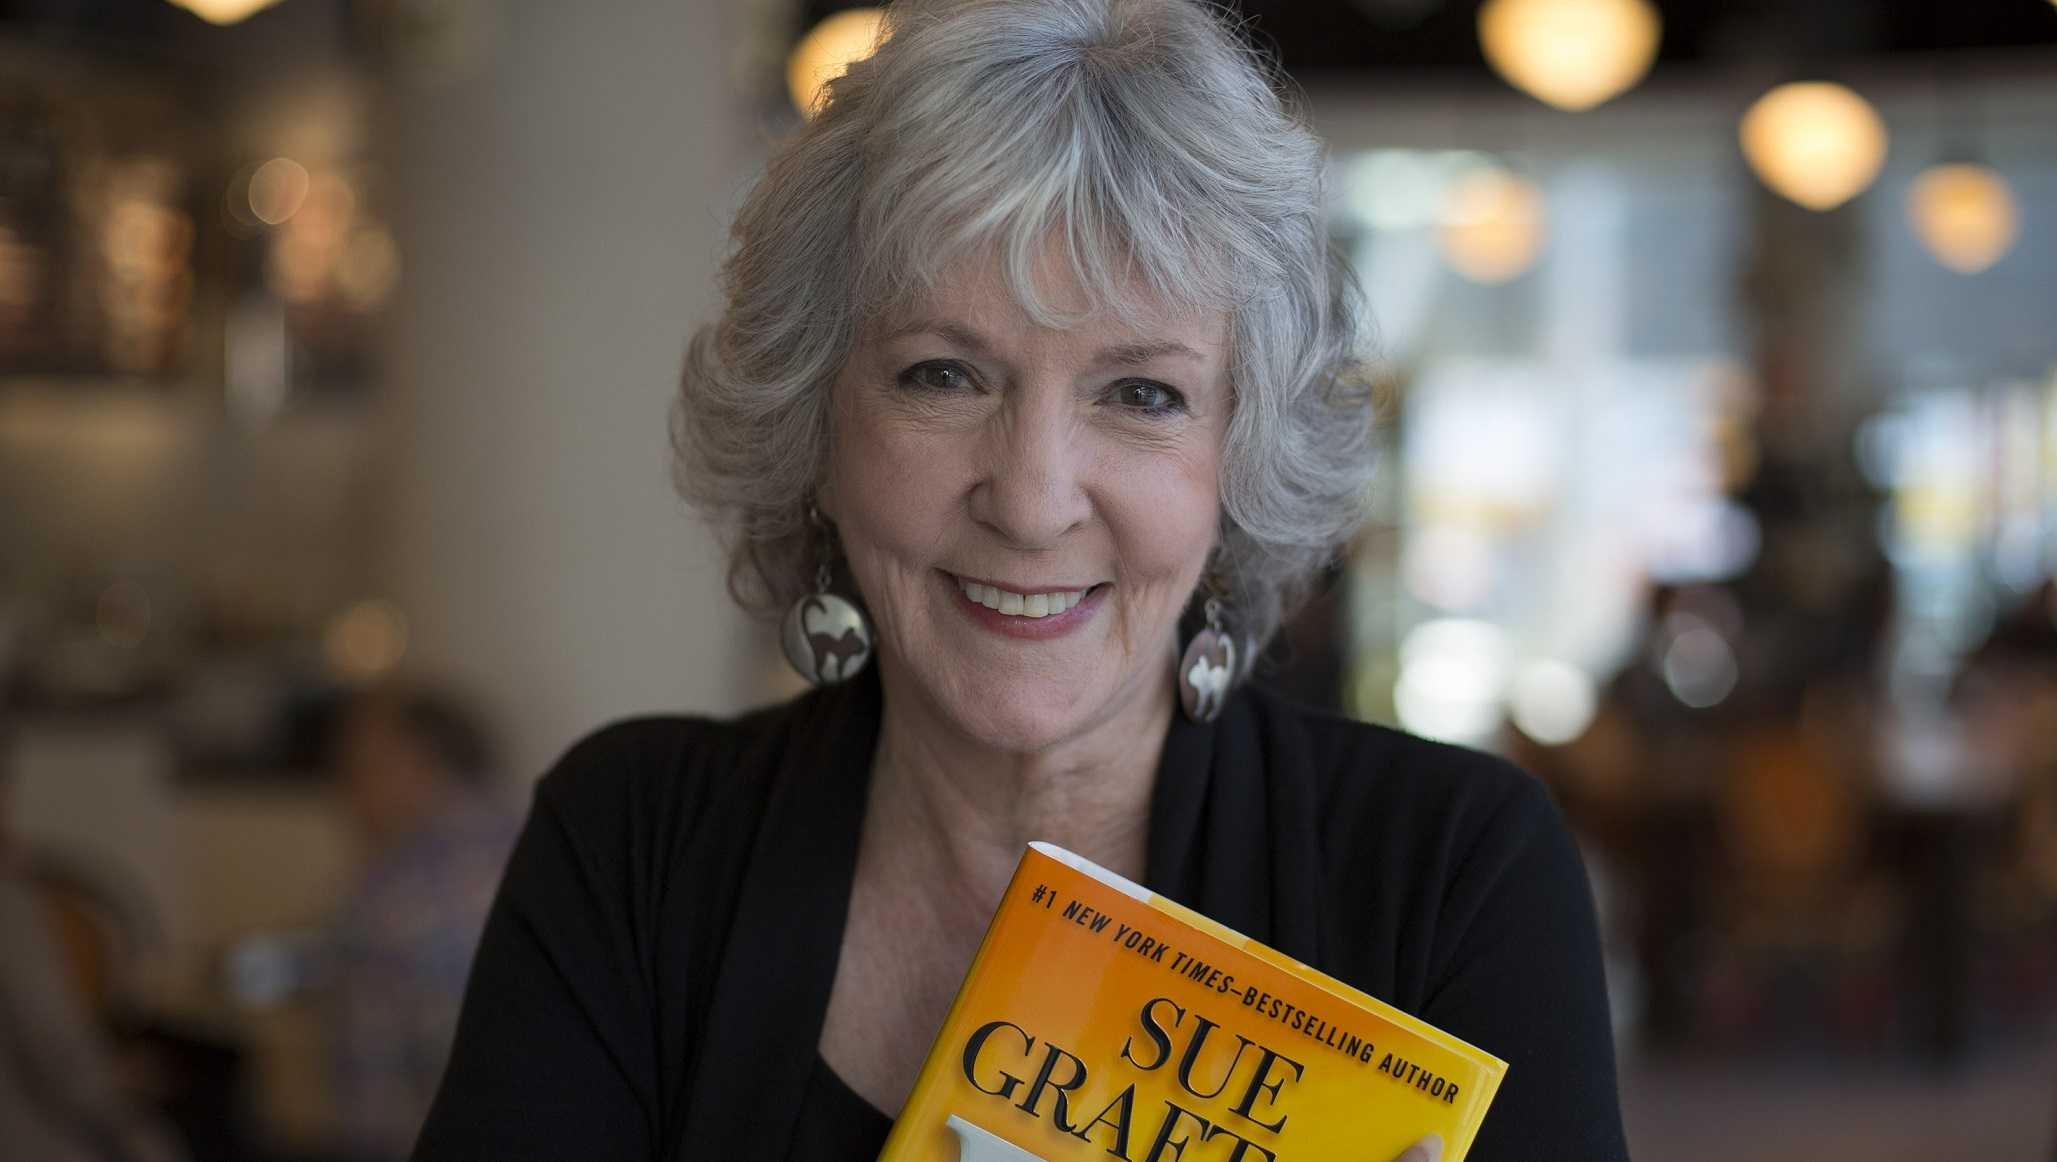 Detective novelist Sue Grafton poses with her 23rd book 'W' at a coffee shop in the Toronto Reference Library, October 3, 2013.